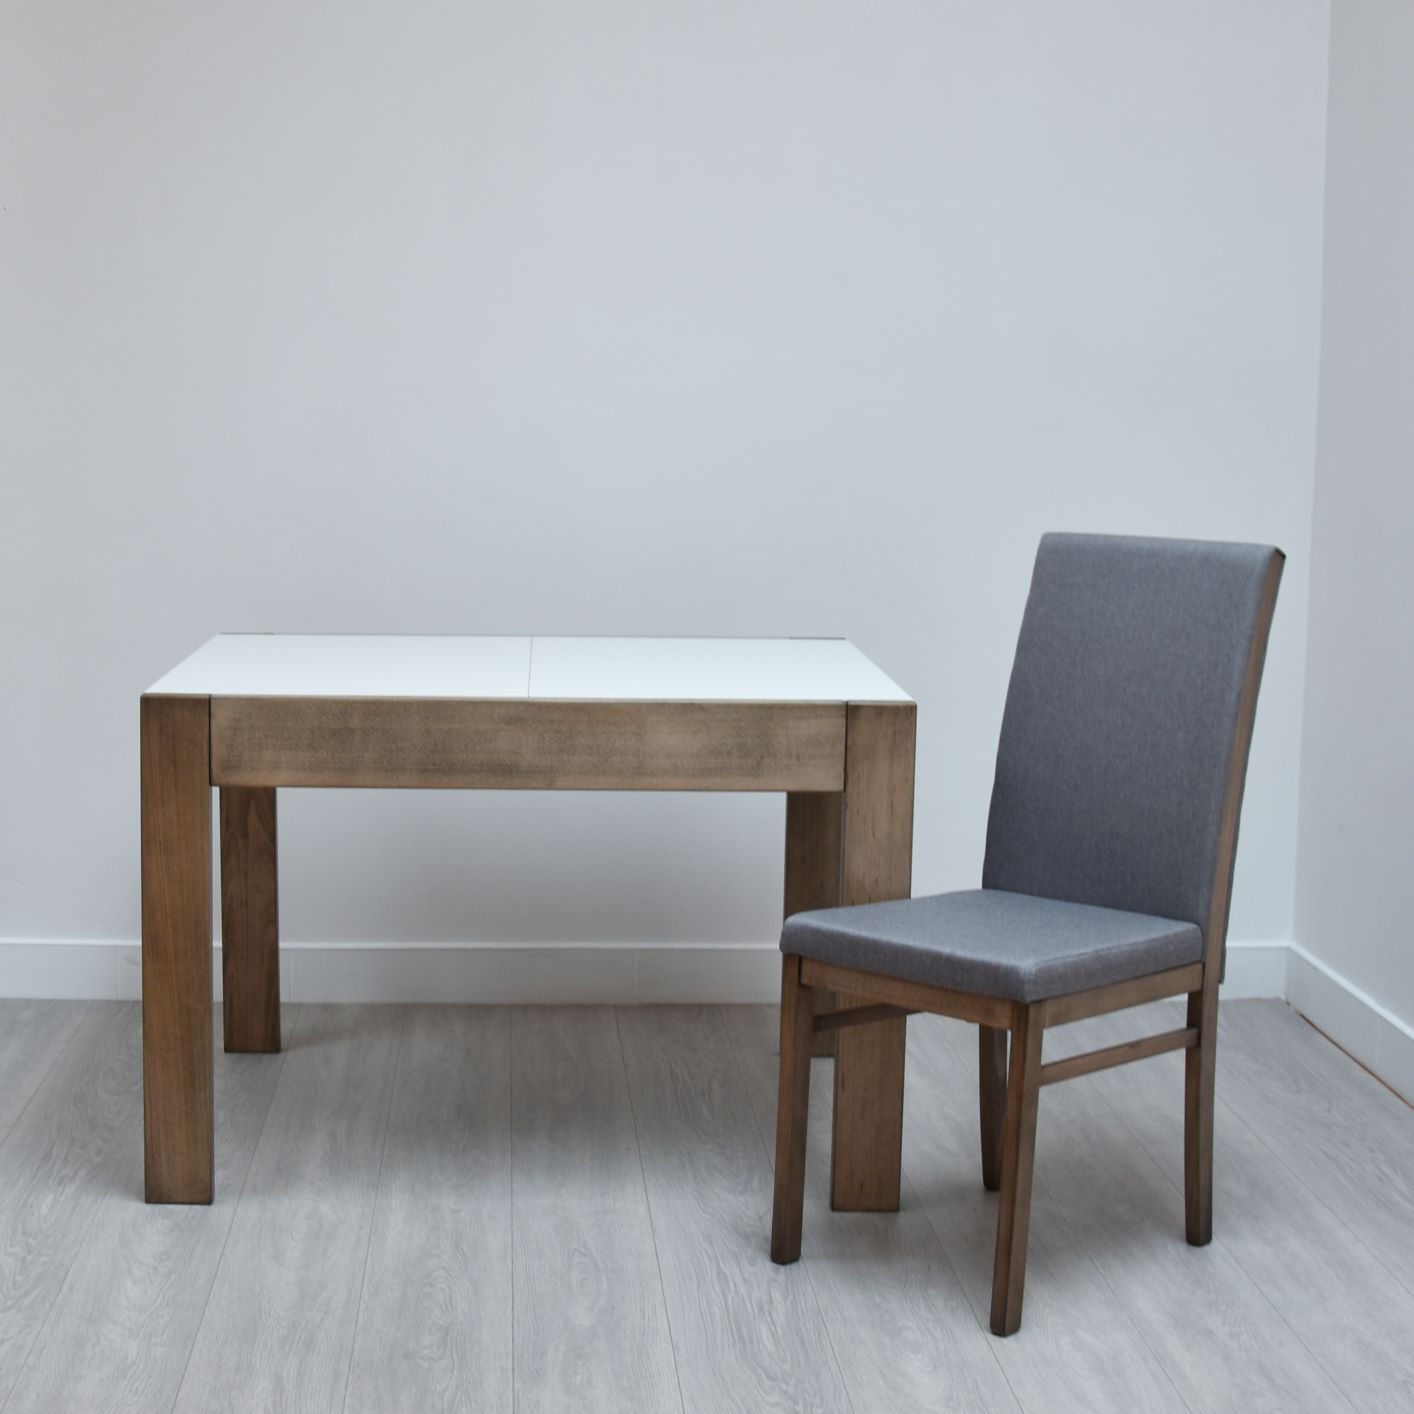 Extendable Table Neapol and Lur Chair from GVA Interiors